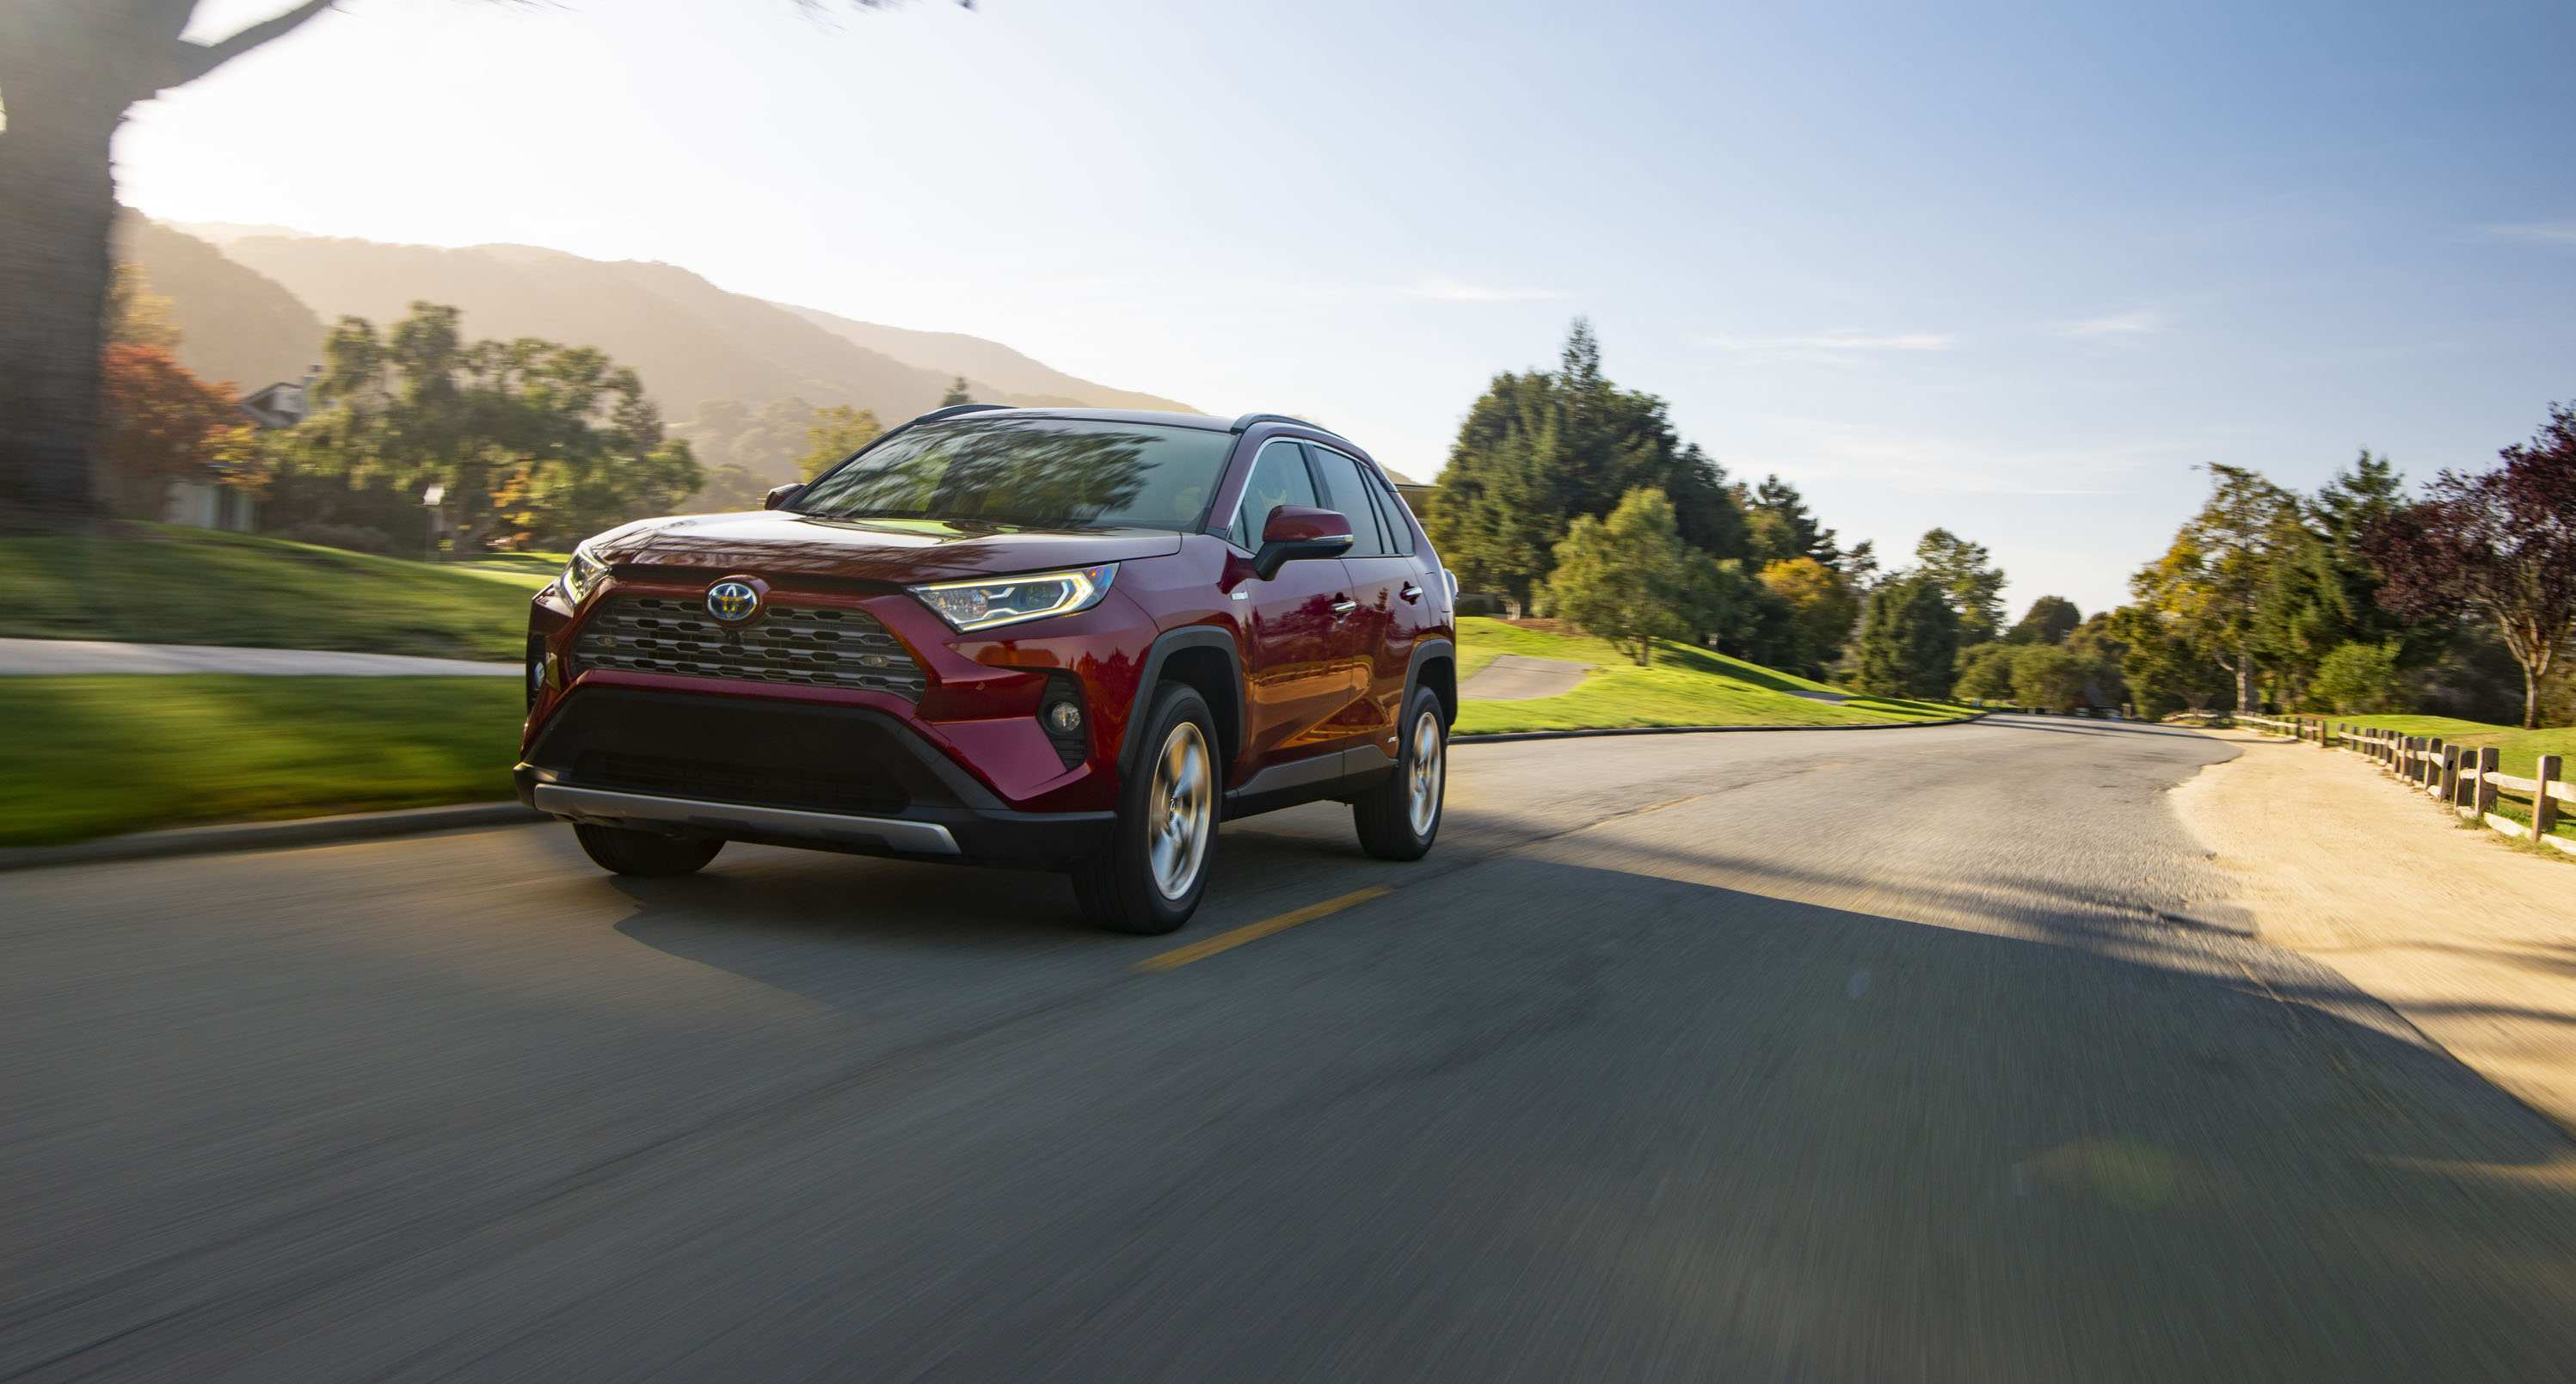 59 All New 2019 Bmw Terrain Gas Mileage Research New